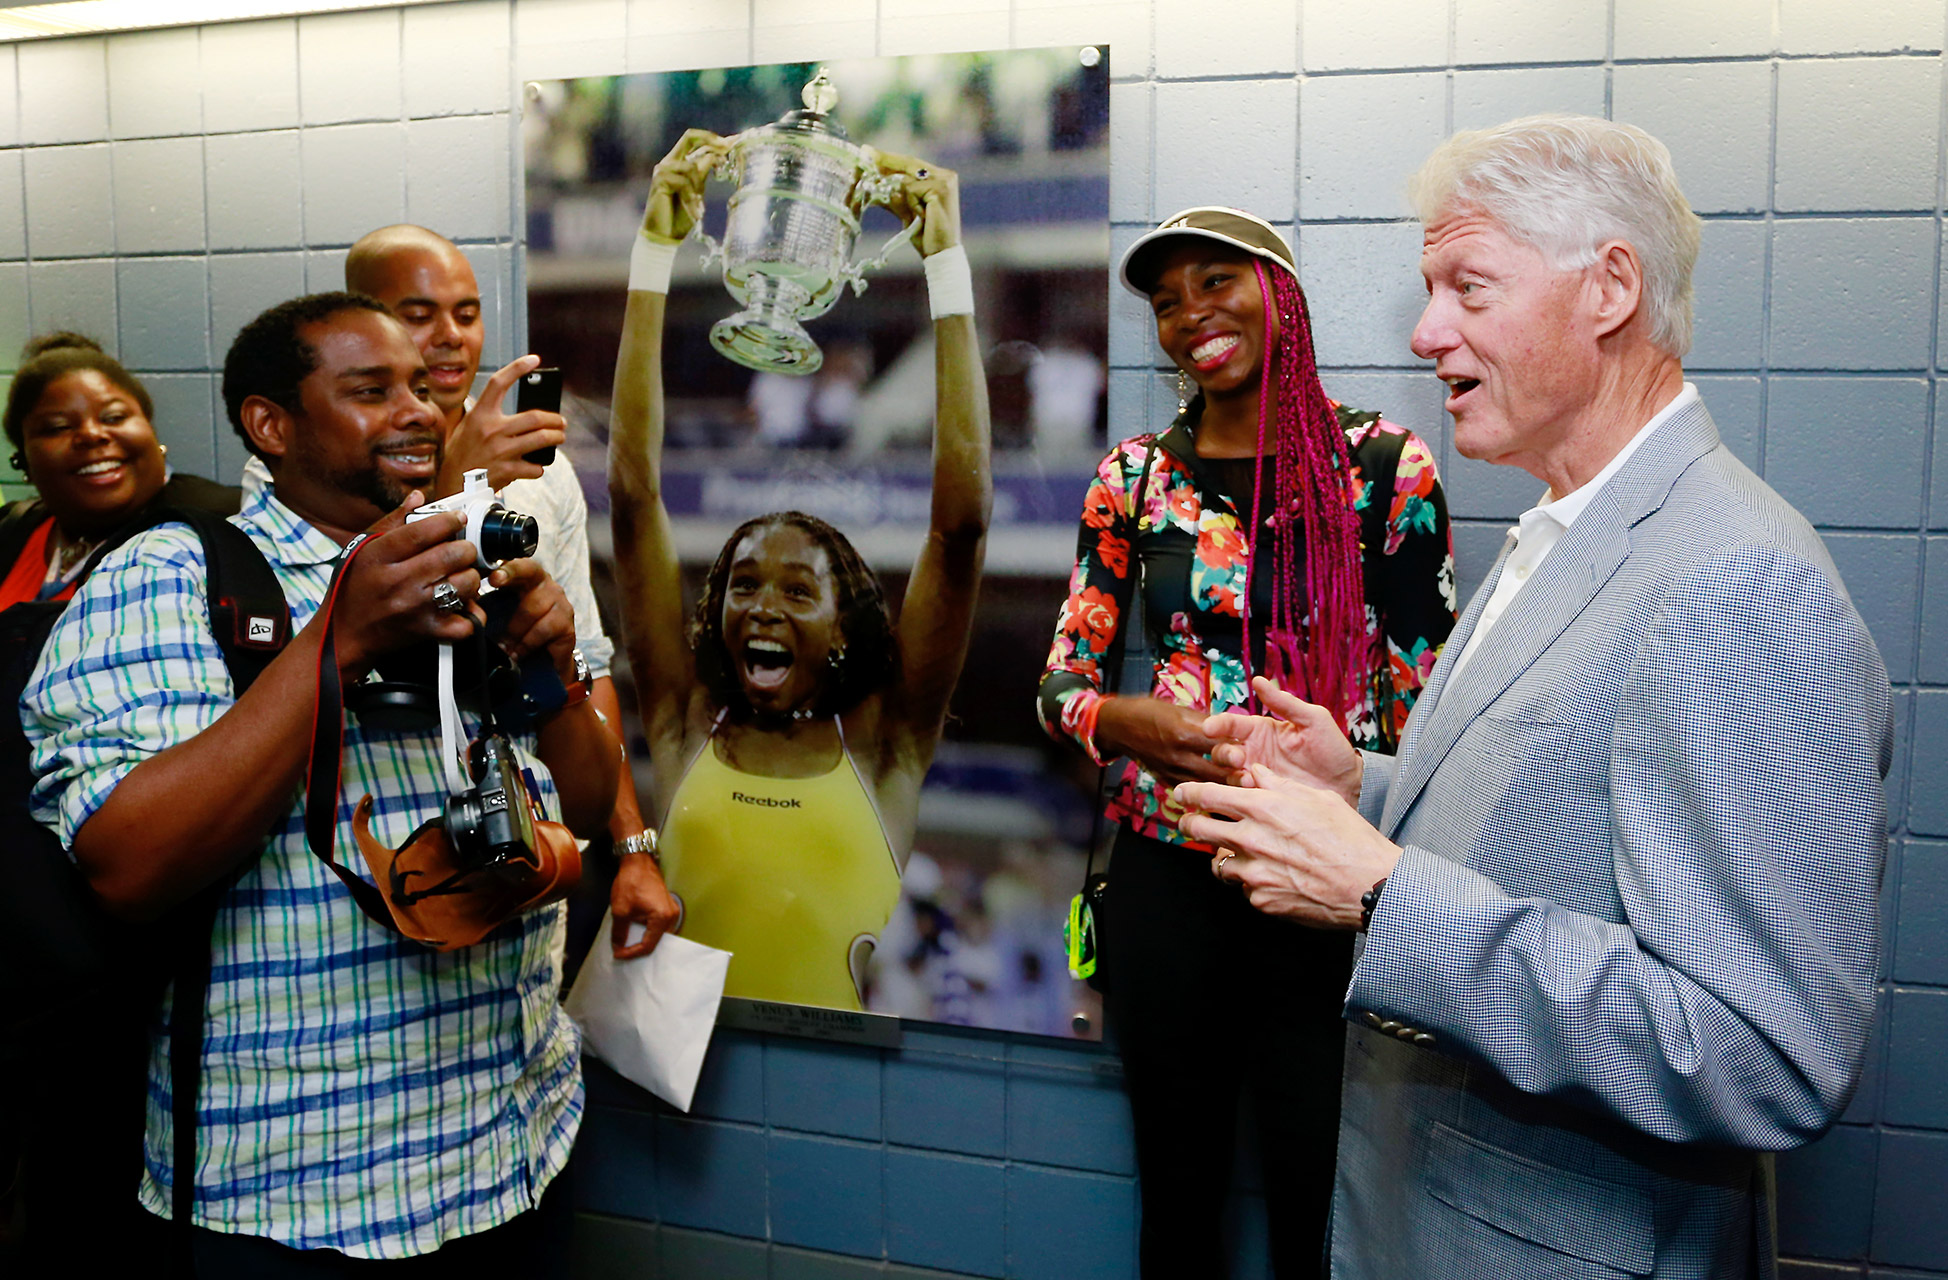 Venus Williams and Bill Clinton